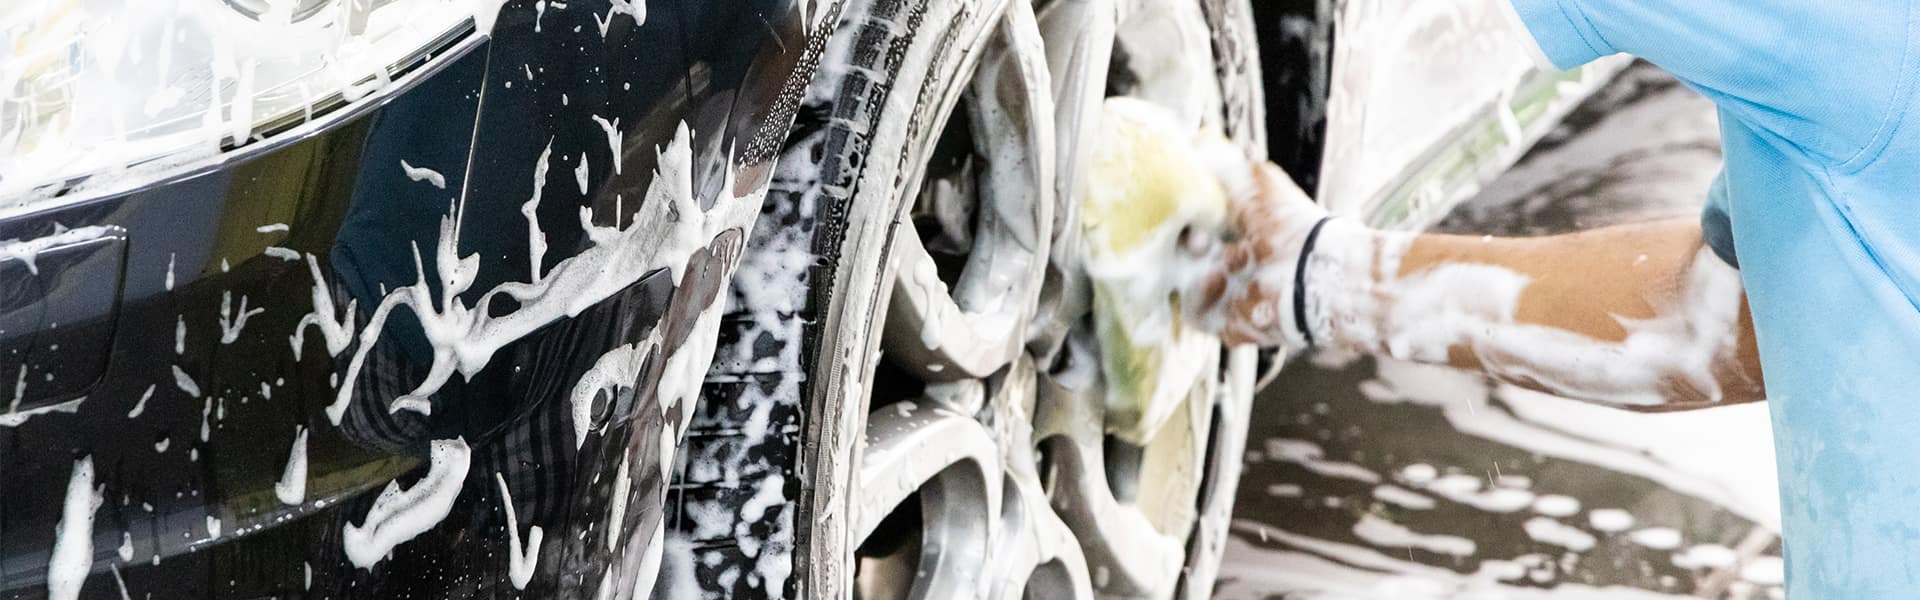 Tips for spring cleaning your car at Halterman's Toyota in East Stroudsburg   Man Washing Exterior of Vehicle